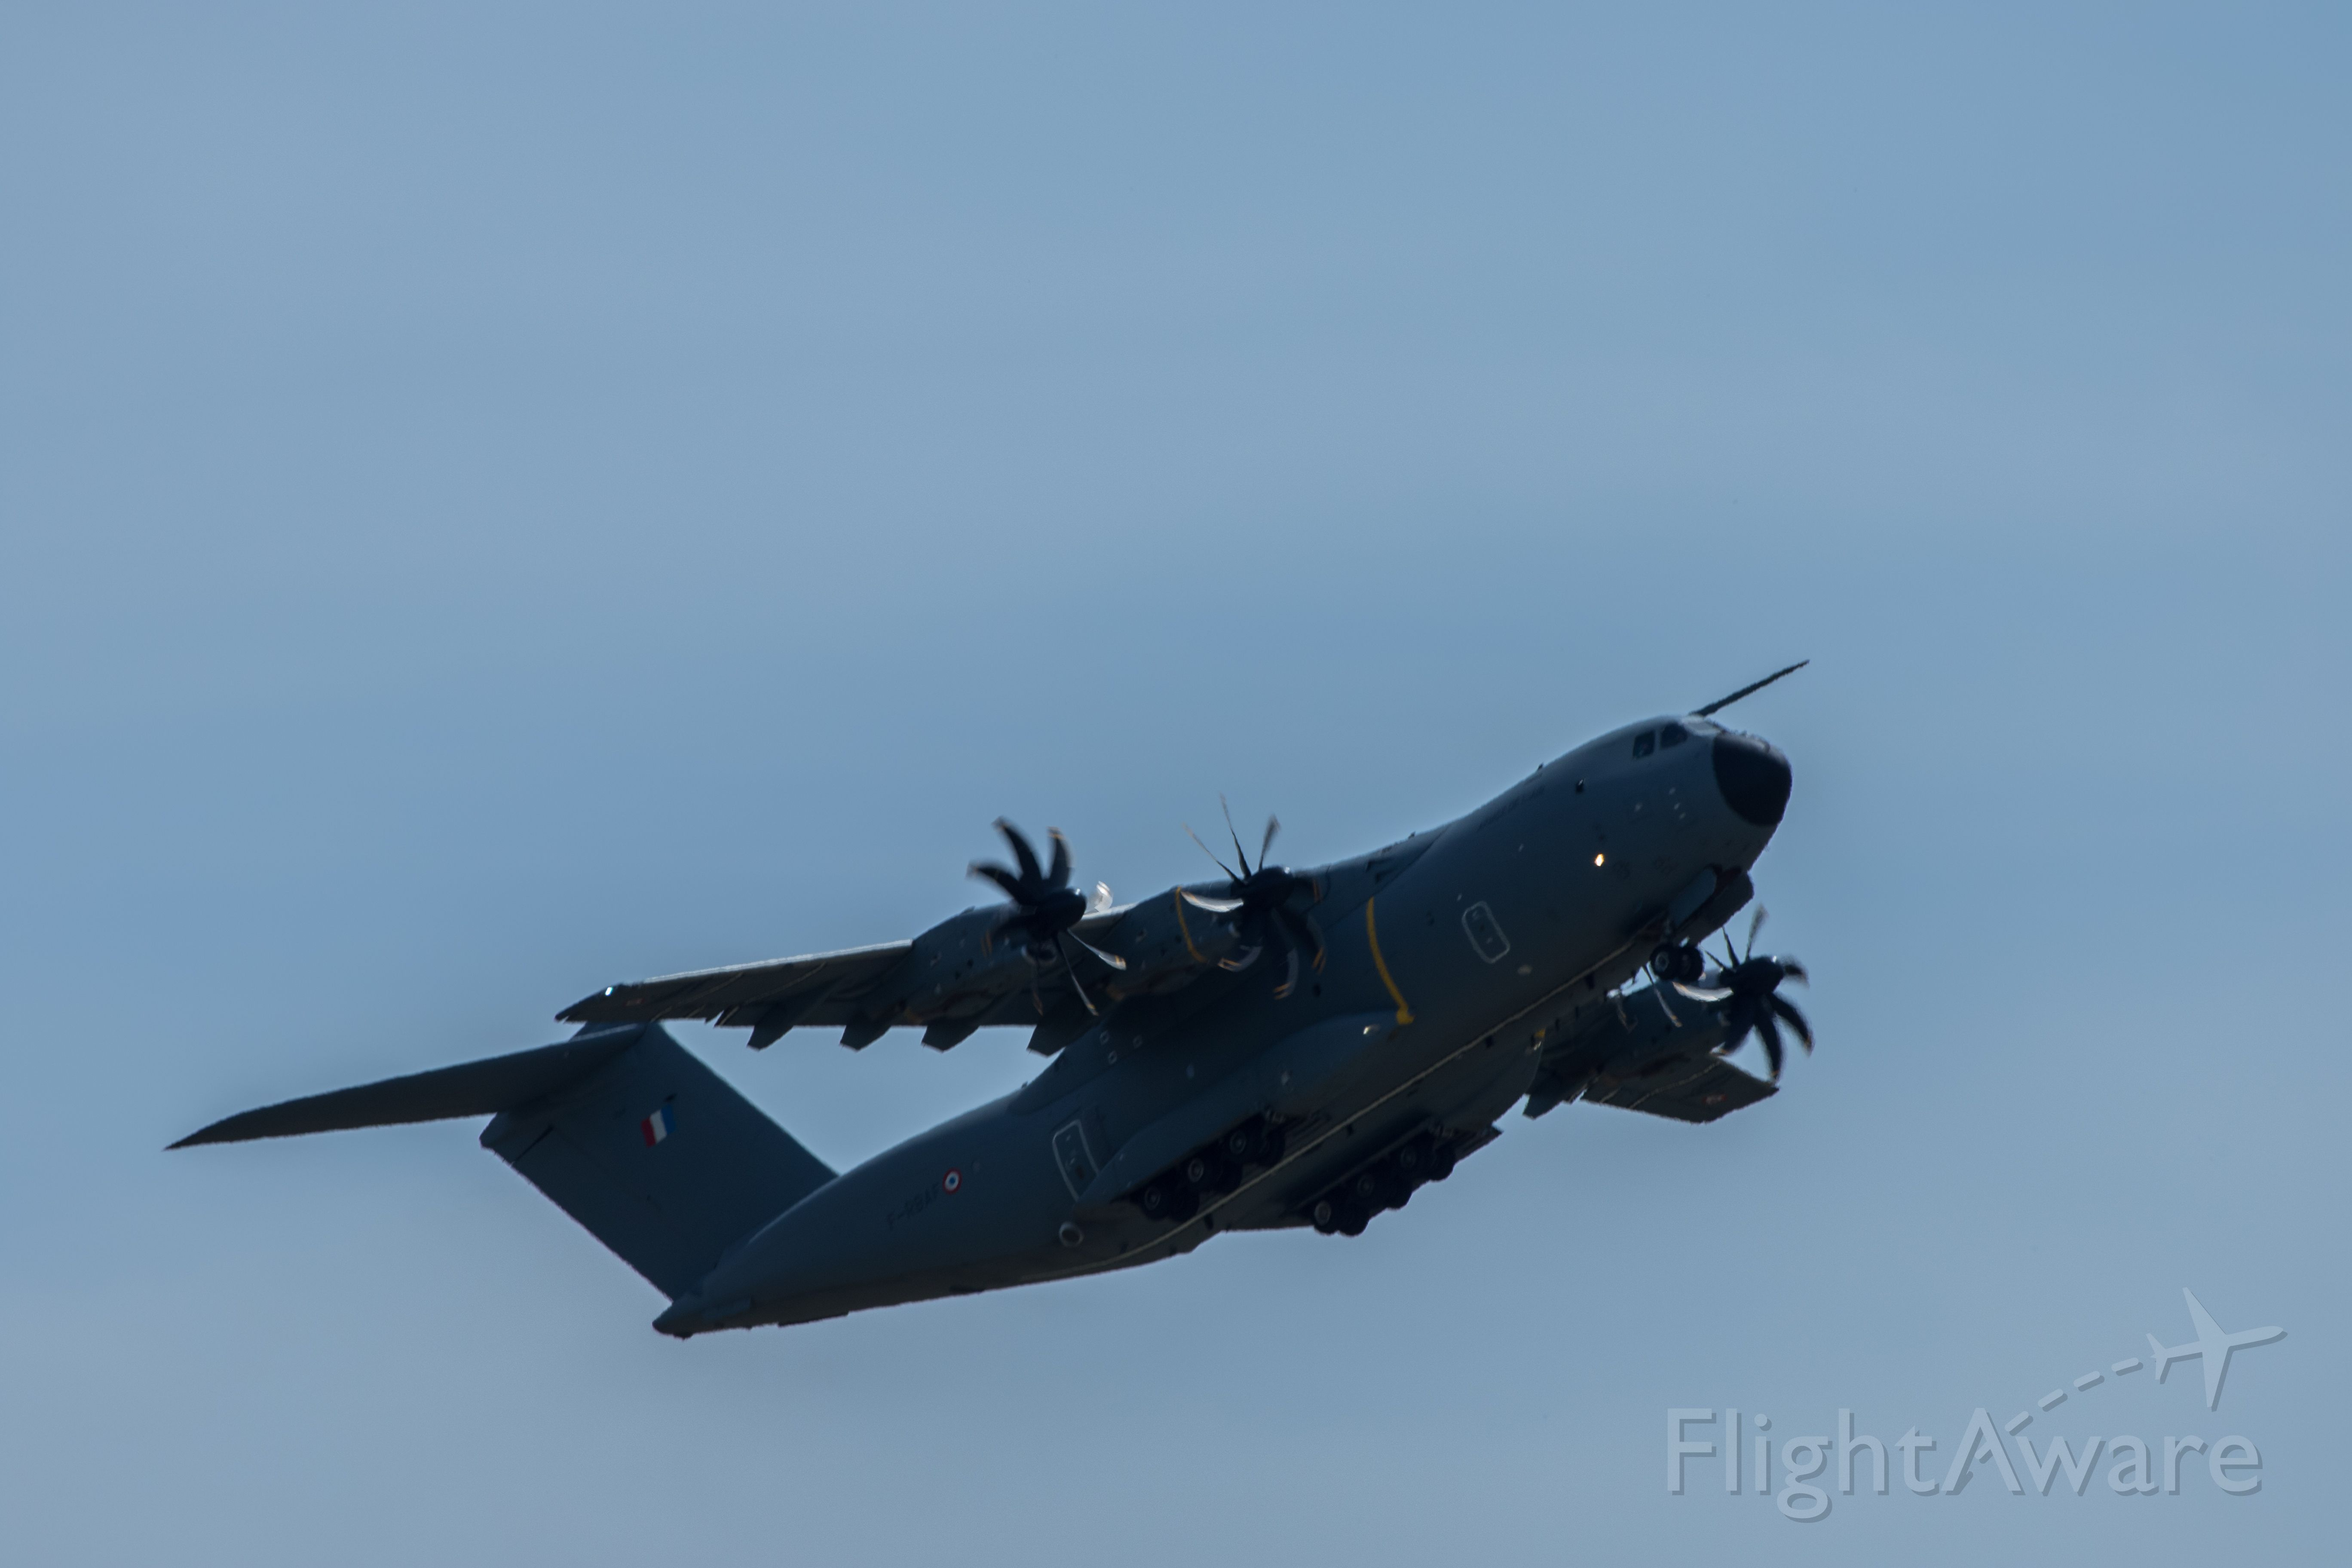 AIRBUS A-400M Atlas — - Airbus A400M at Mather airport for a once in a lifetime show with the Patrouille de France military demonstration team.